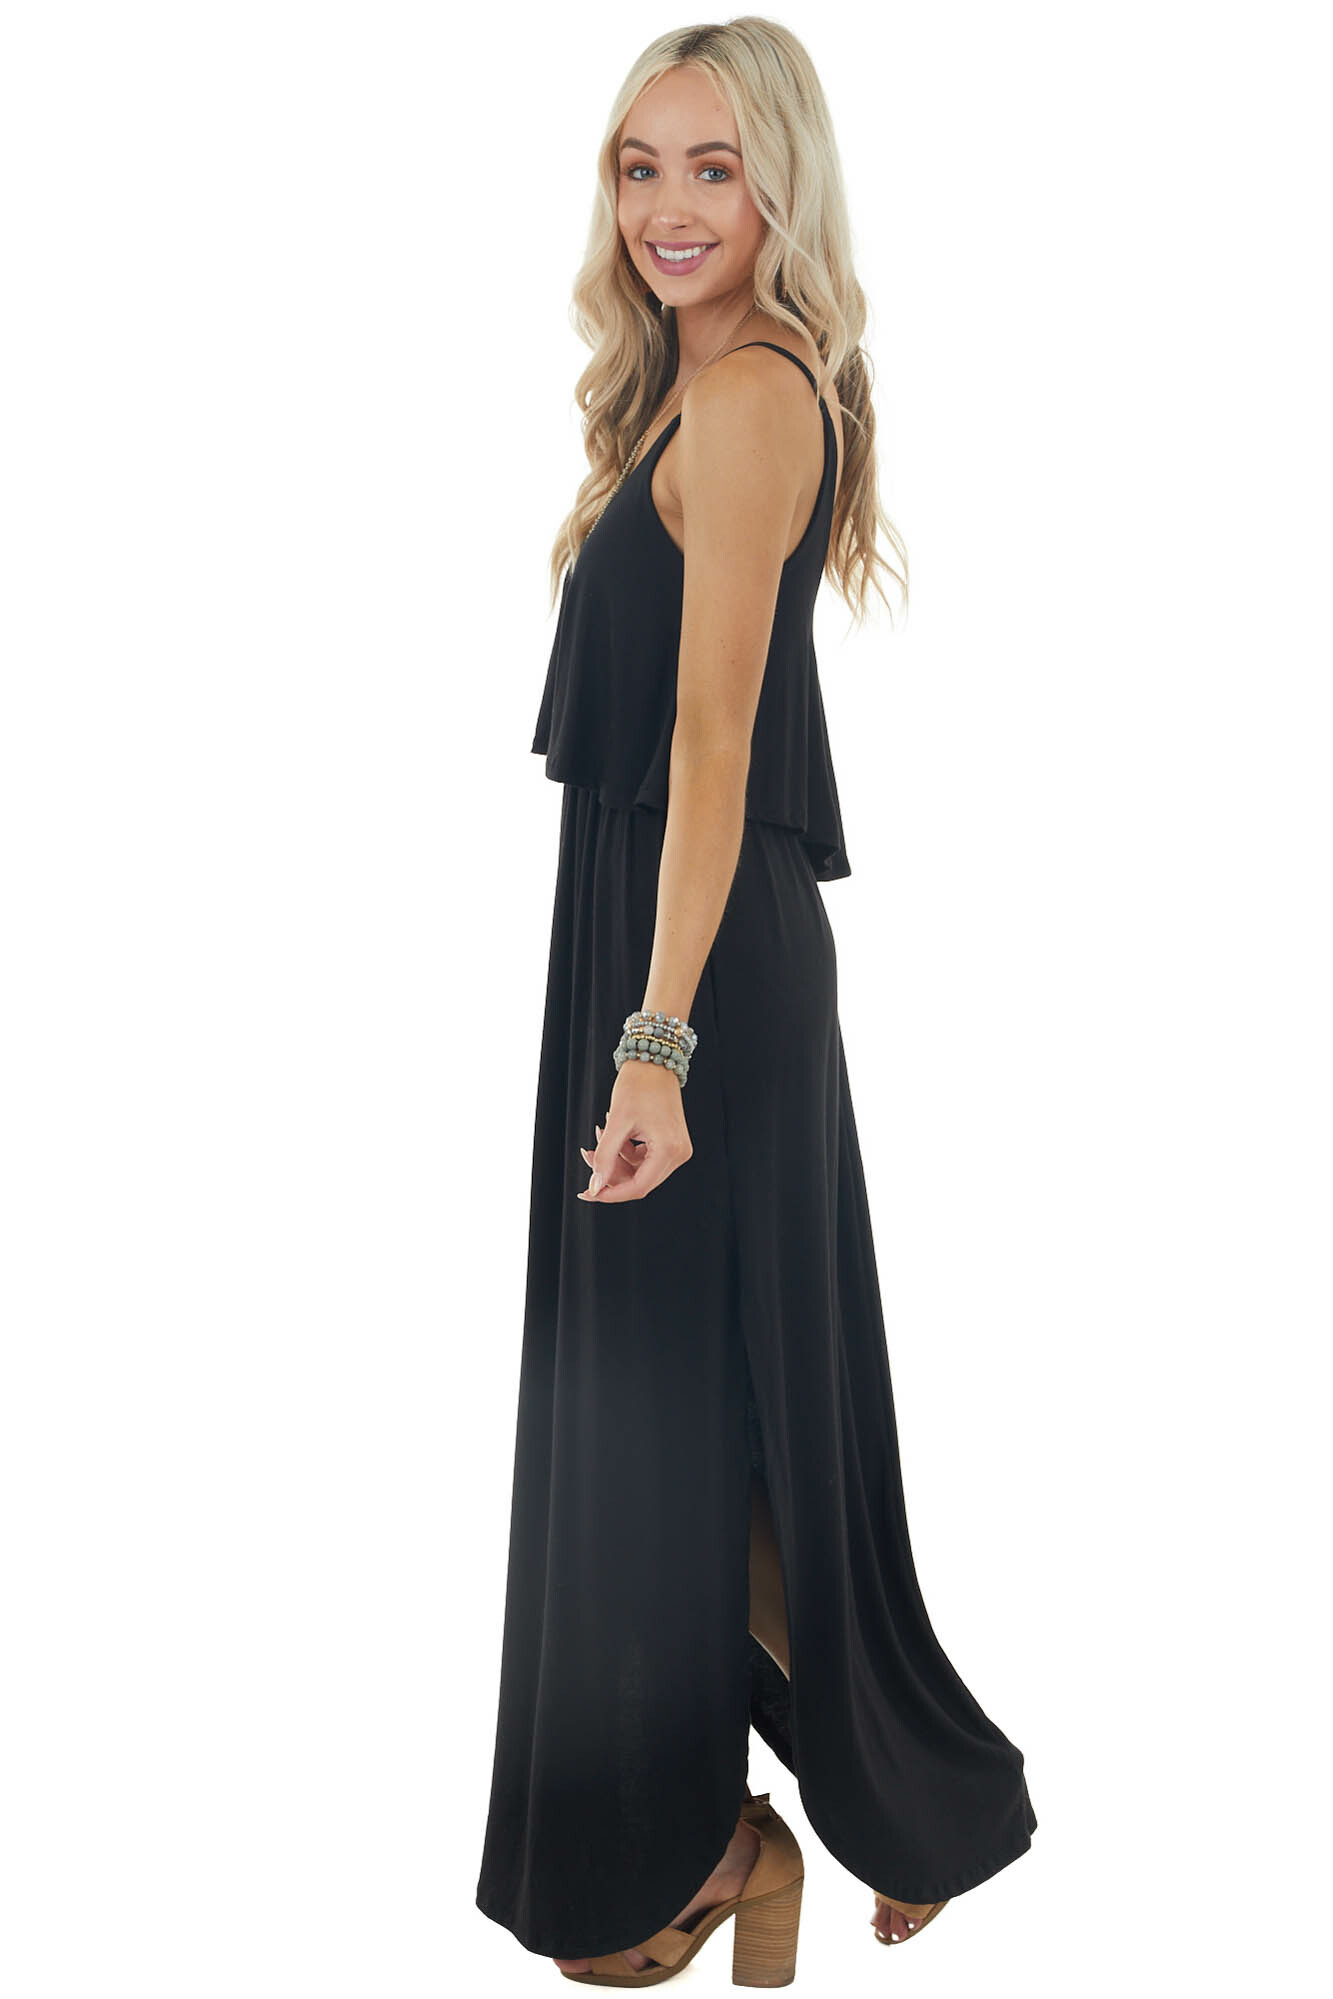 Black Sleeveless Knit Maxi Dress with Ruffle Overlay